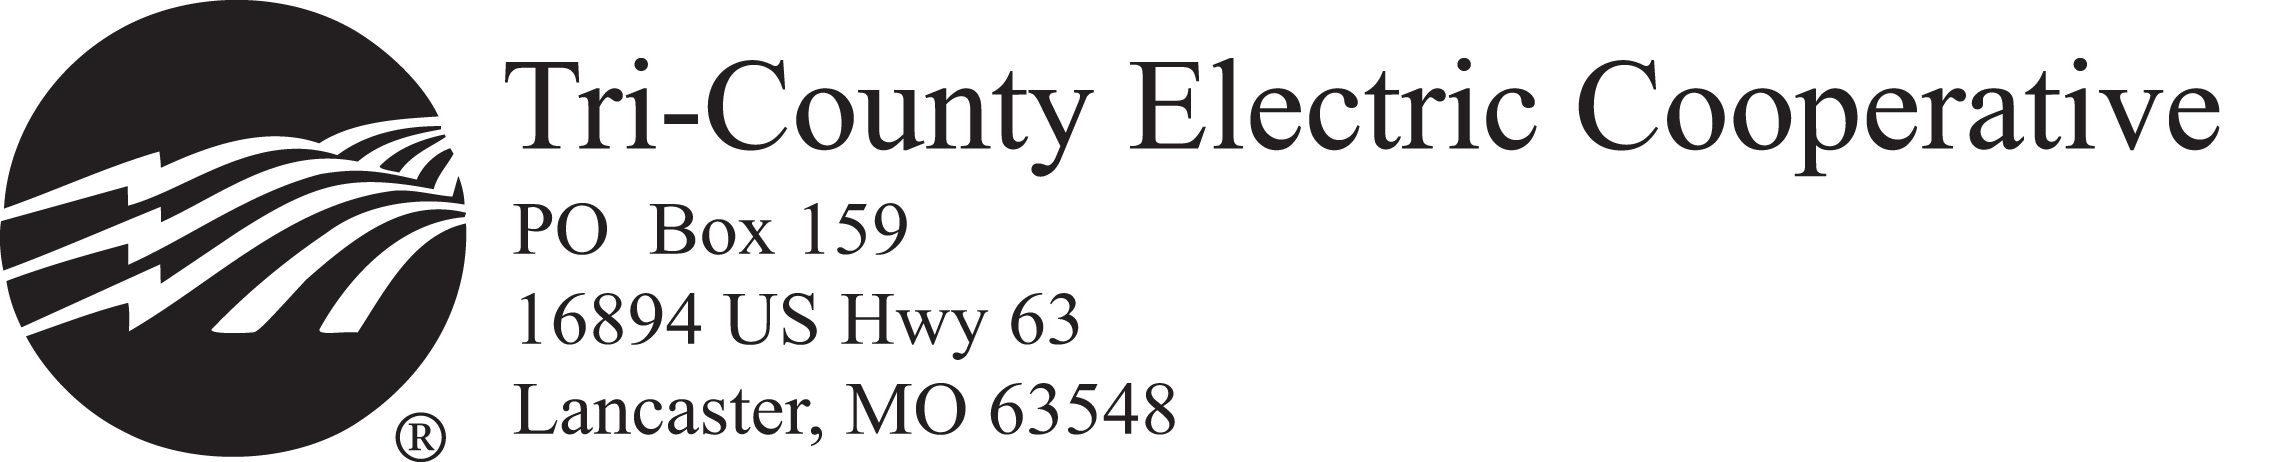 Tri-County Electric Cooperative Logo